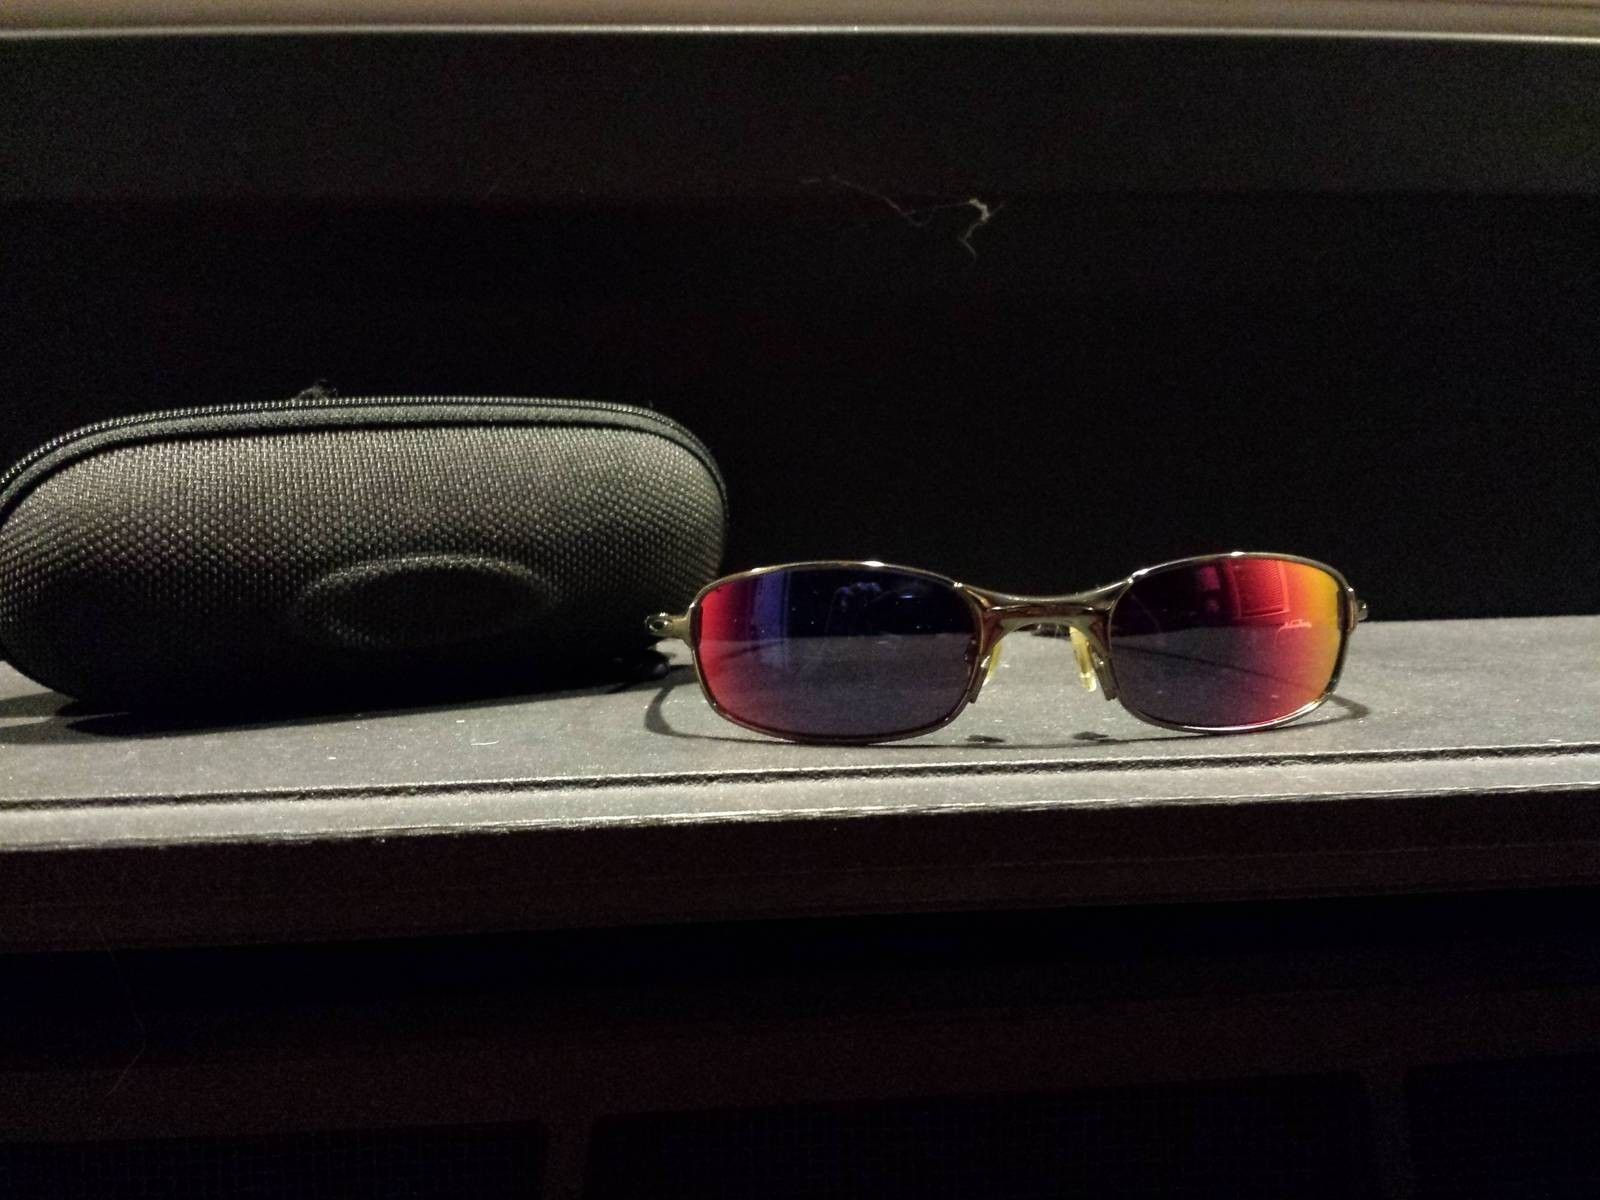 Older Oakley ID Needed Please - 8oVrk41.jpg